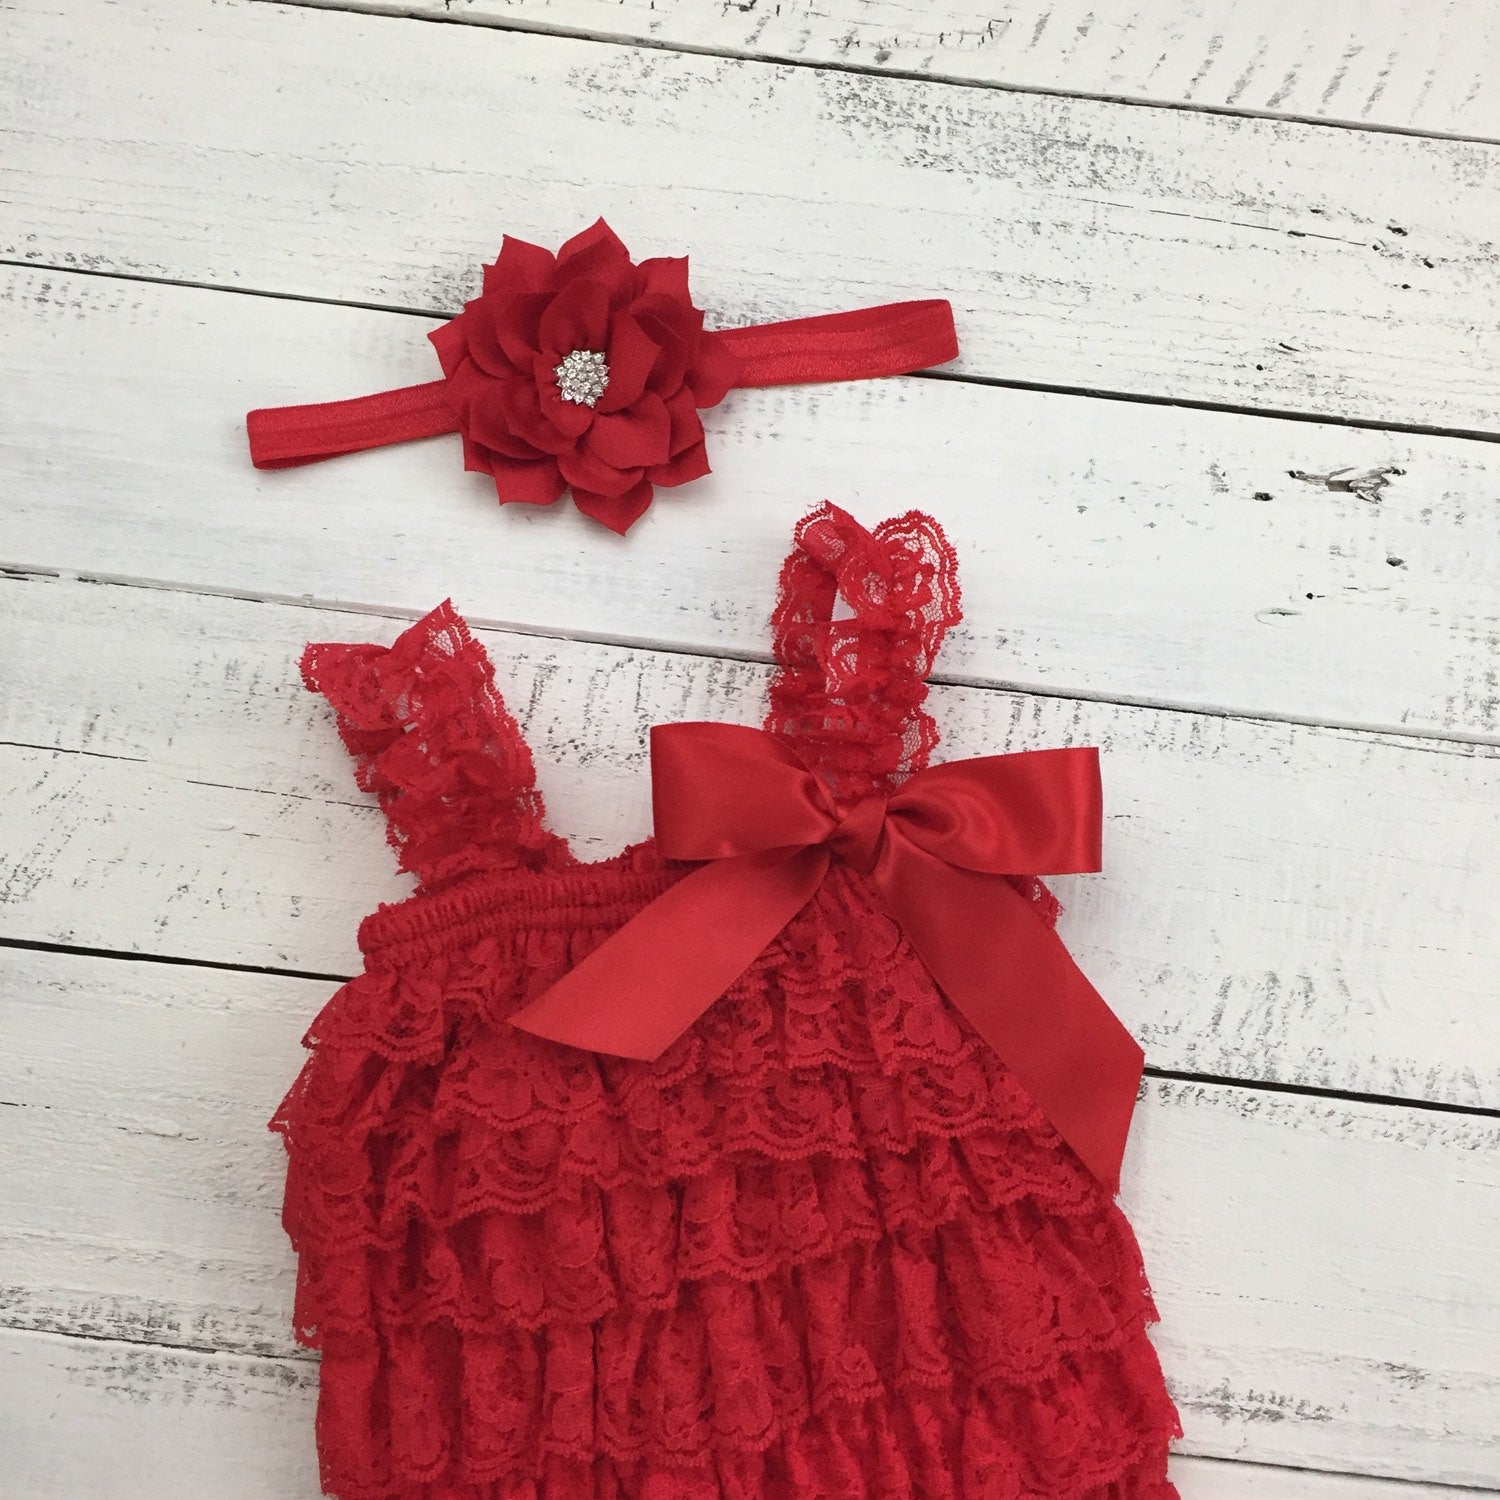 85357f1b15f11 Lace Romper - Christmas Red Lace Petti Romper and matching poinsettia  headband